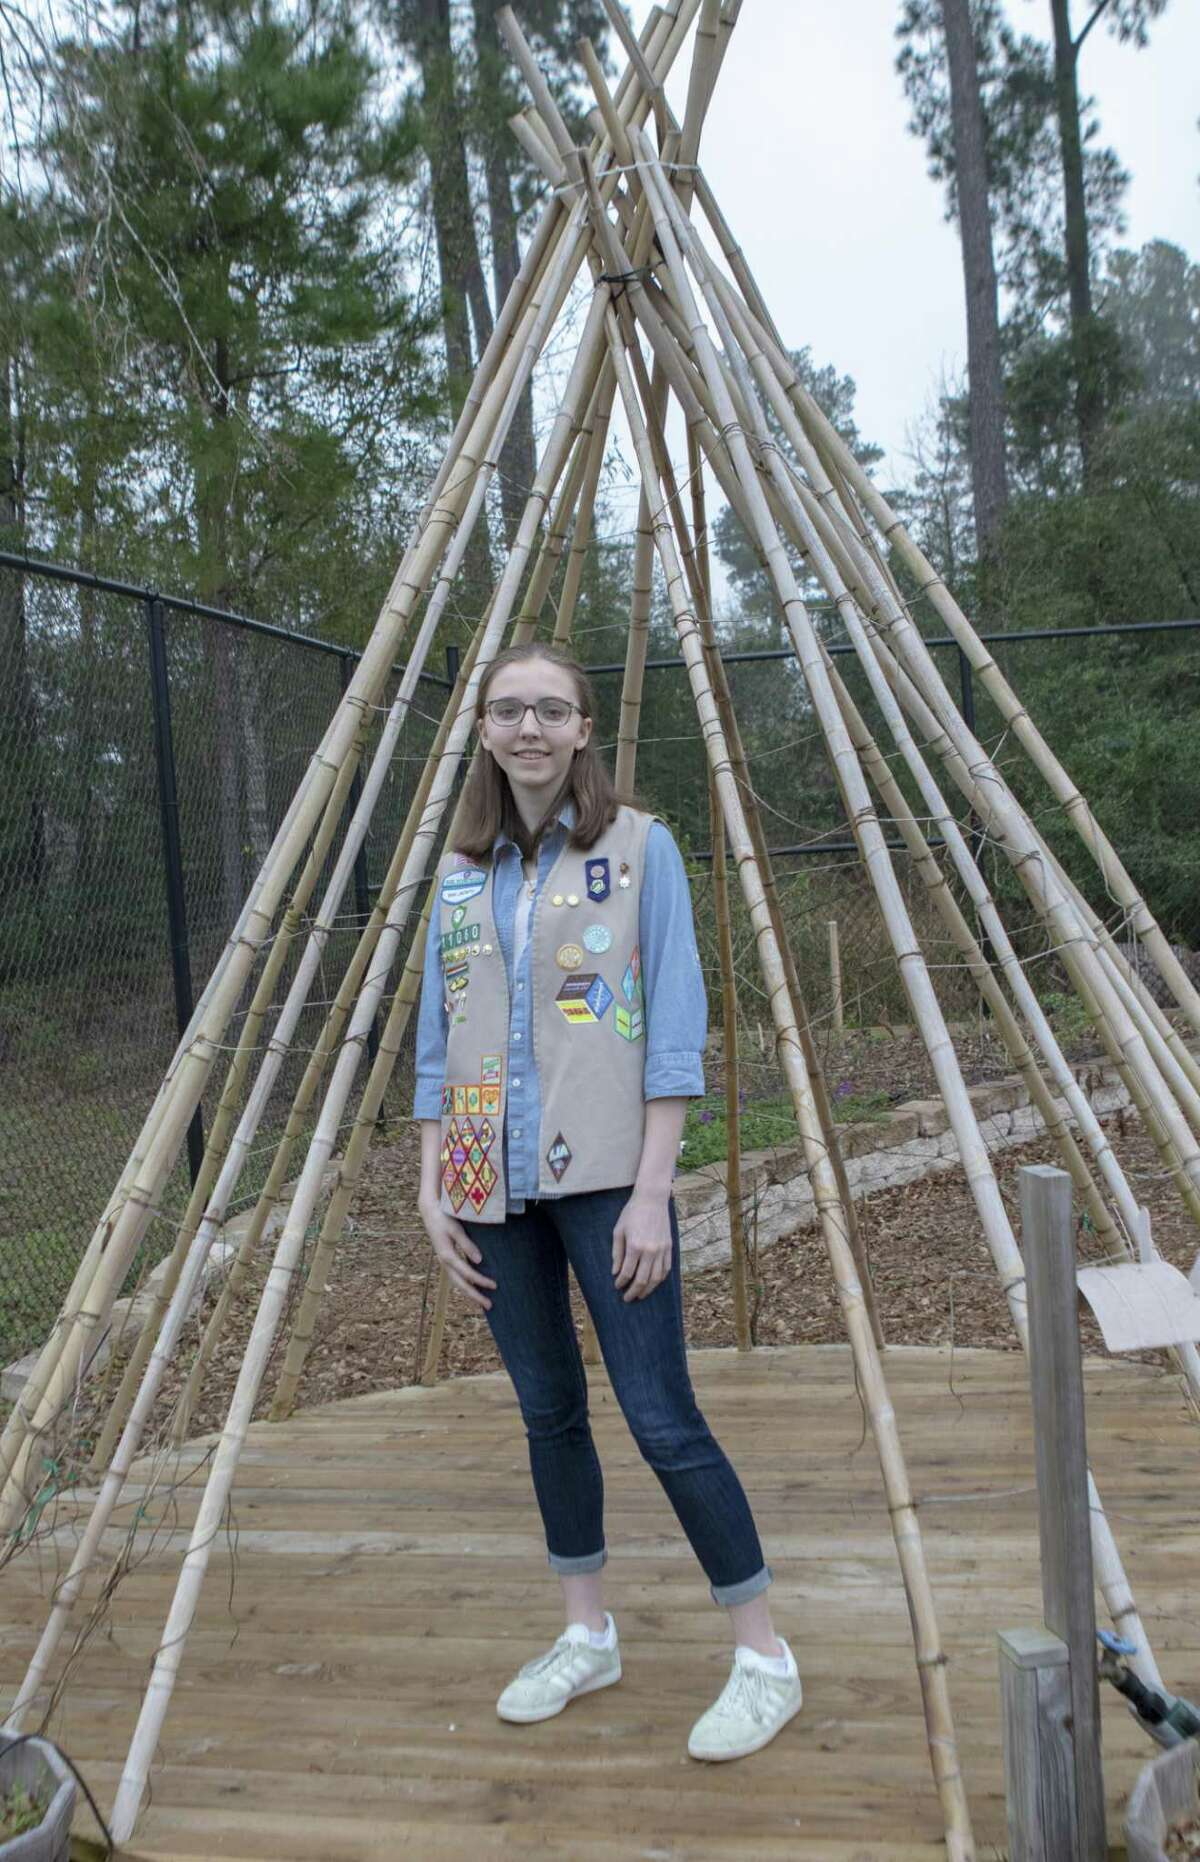 Scout Ellen Crawford stands inside the living teepee she planned and made Tuesday, Feb. 26, 2019 at the Wendtwoods Community Vegetable Garden in The Woodlands.